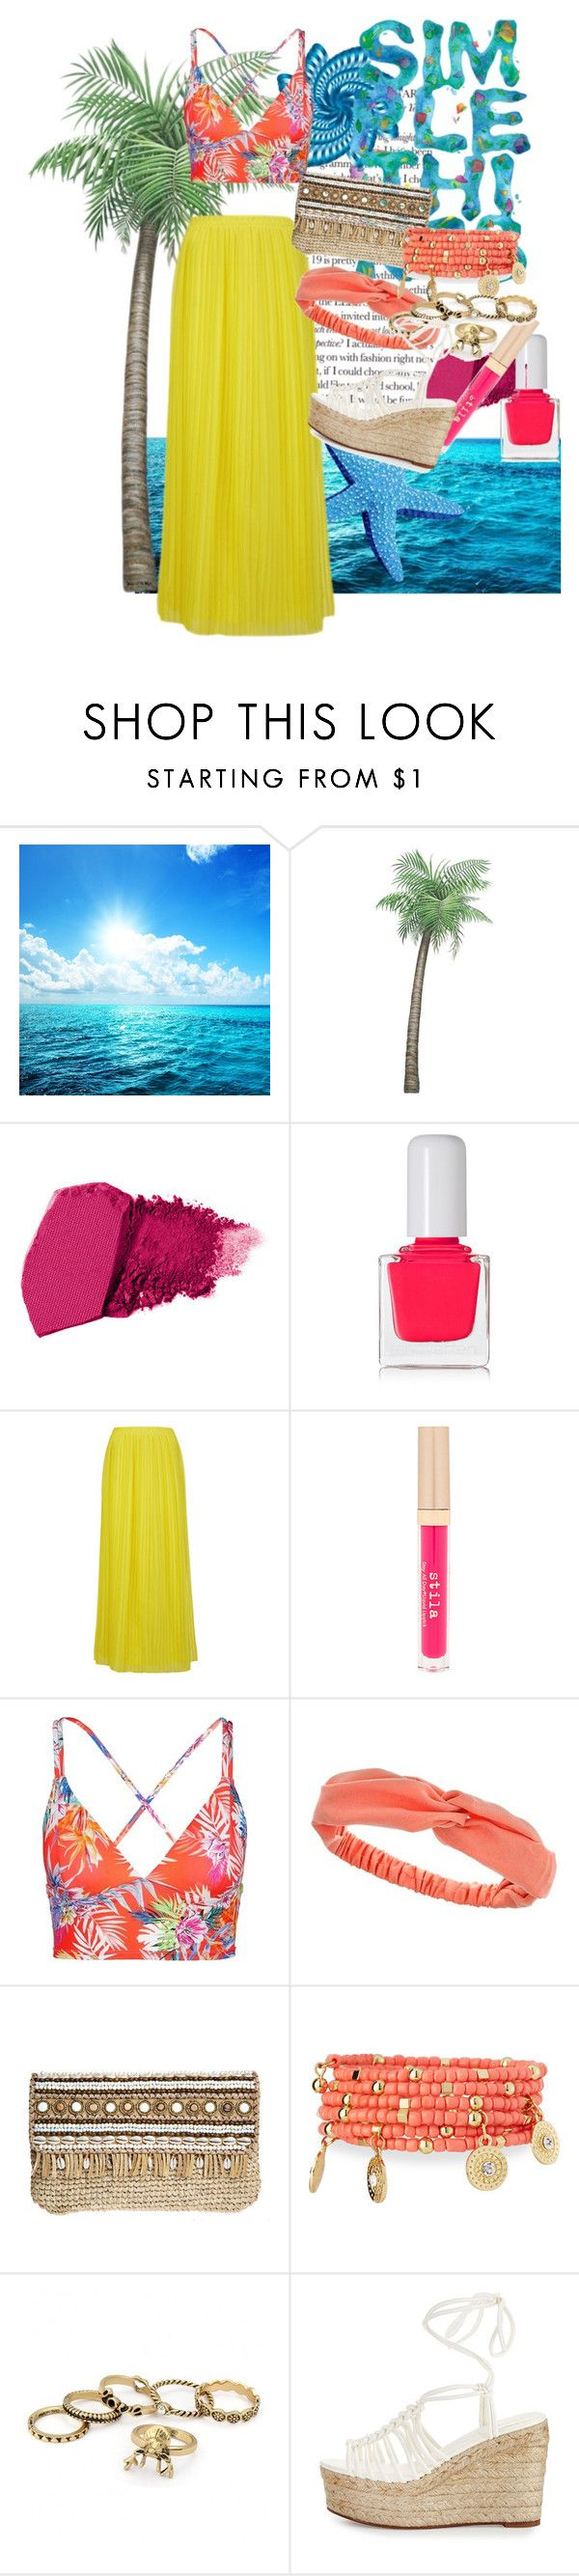 """Tropical outfit"" by abbymadan ❤ liked on Polyvore featuring tenoverten, BOSS Orange, Stila, Vitamin A, Dorothy Perkins, Skemo, Emily & Ashley and Chloé"